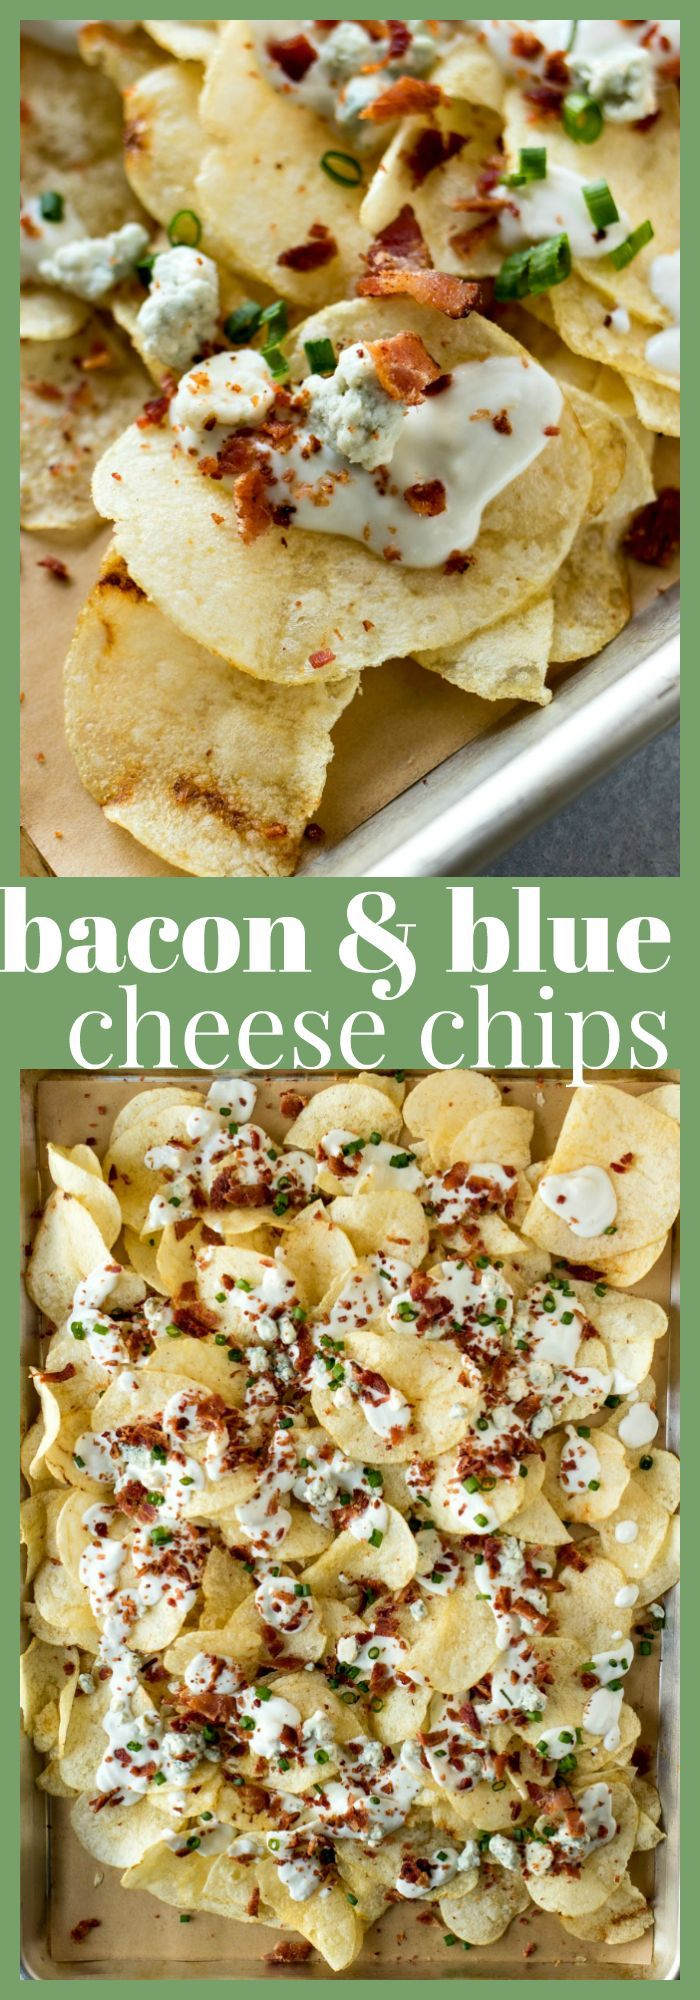 Bacon Blue Cheese Chips – LAY'S®️️ Classic Potato Chips are covered with a homemade blue cheese sauce, blue cheese crumbles, bacon, and chopped scallions. It's the perfect snack to feed a crowd during the big football game! #ad #recipes #footballs #tailgating #chips #snacks #bluecheese #bacon @fritolay